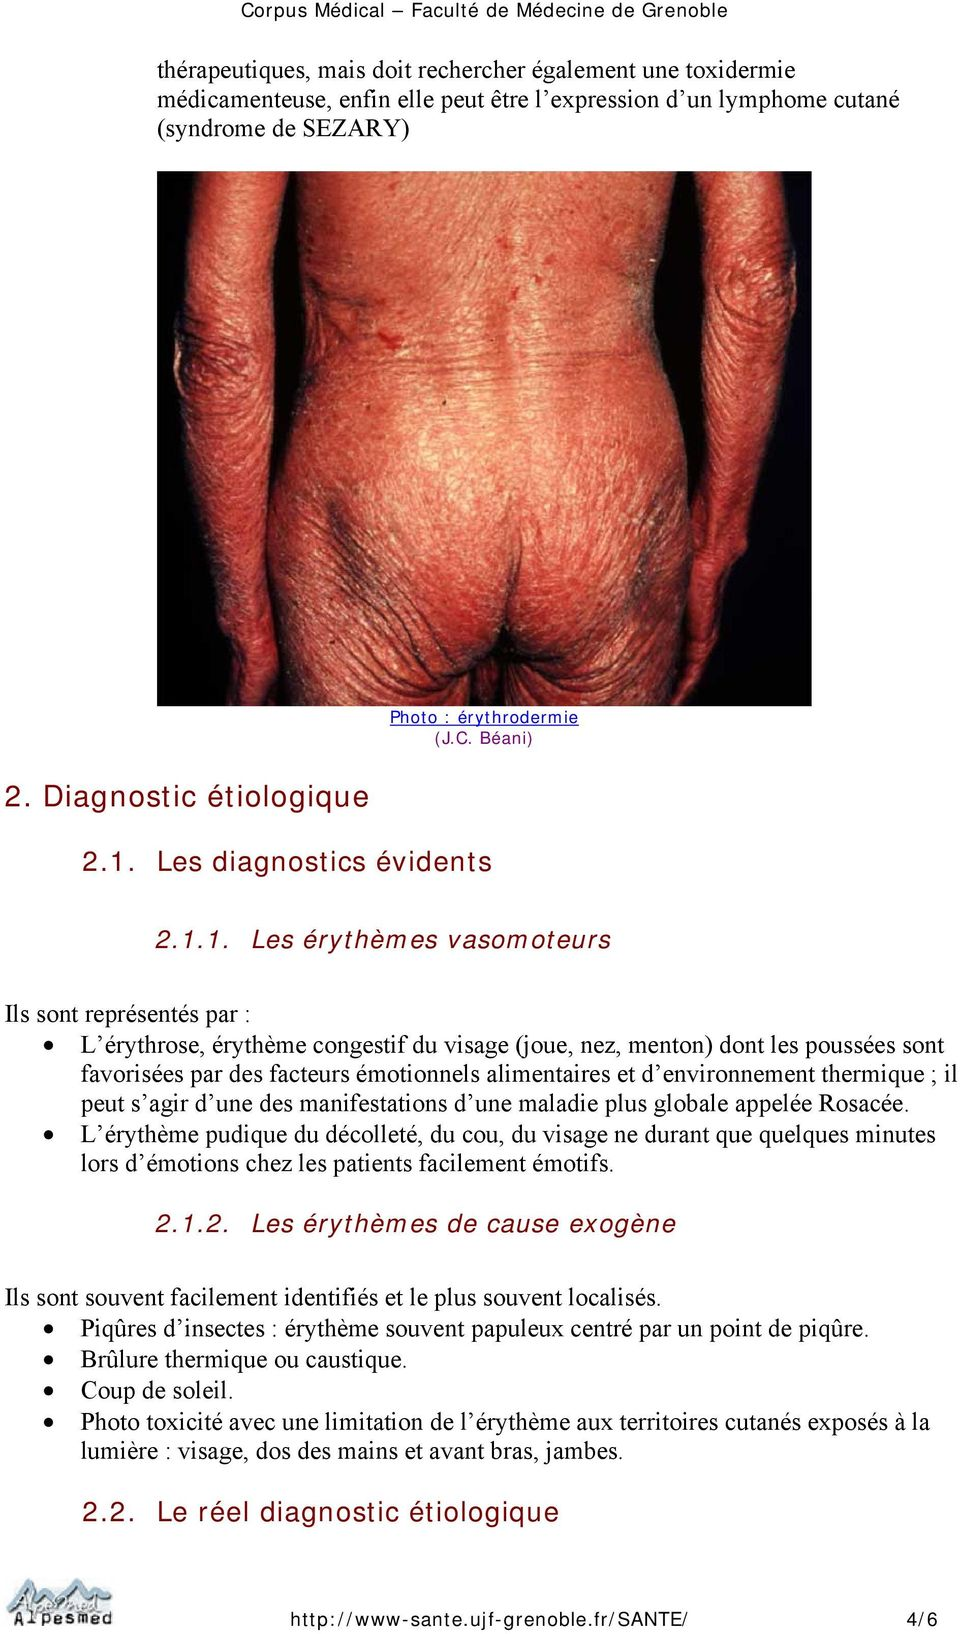 Les diagnostics évidents 2.1.